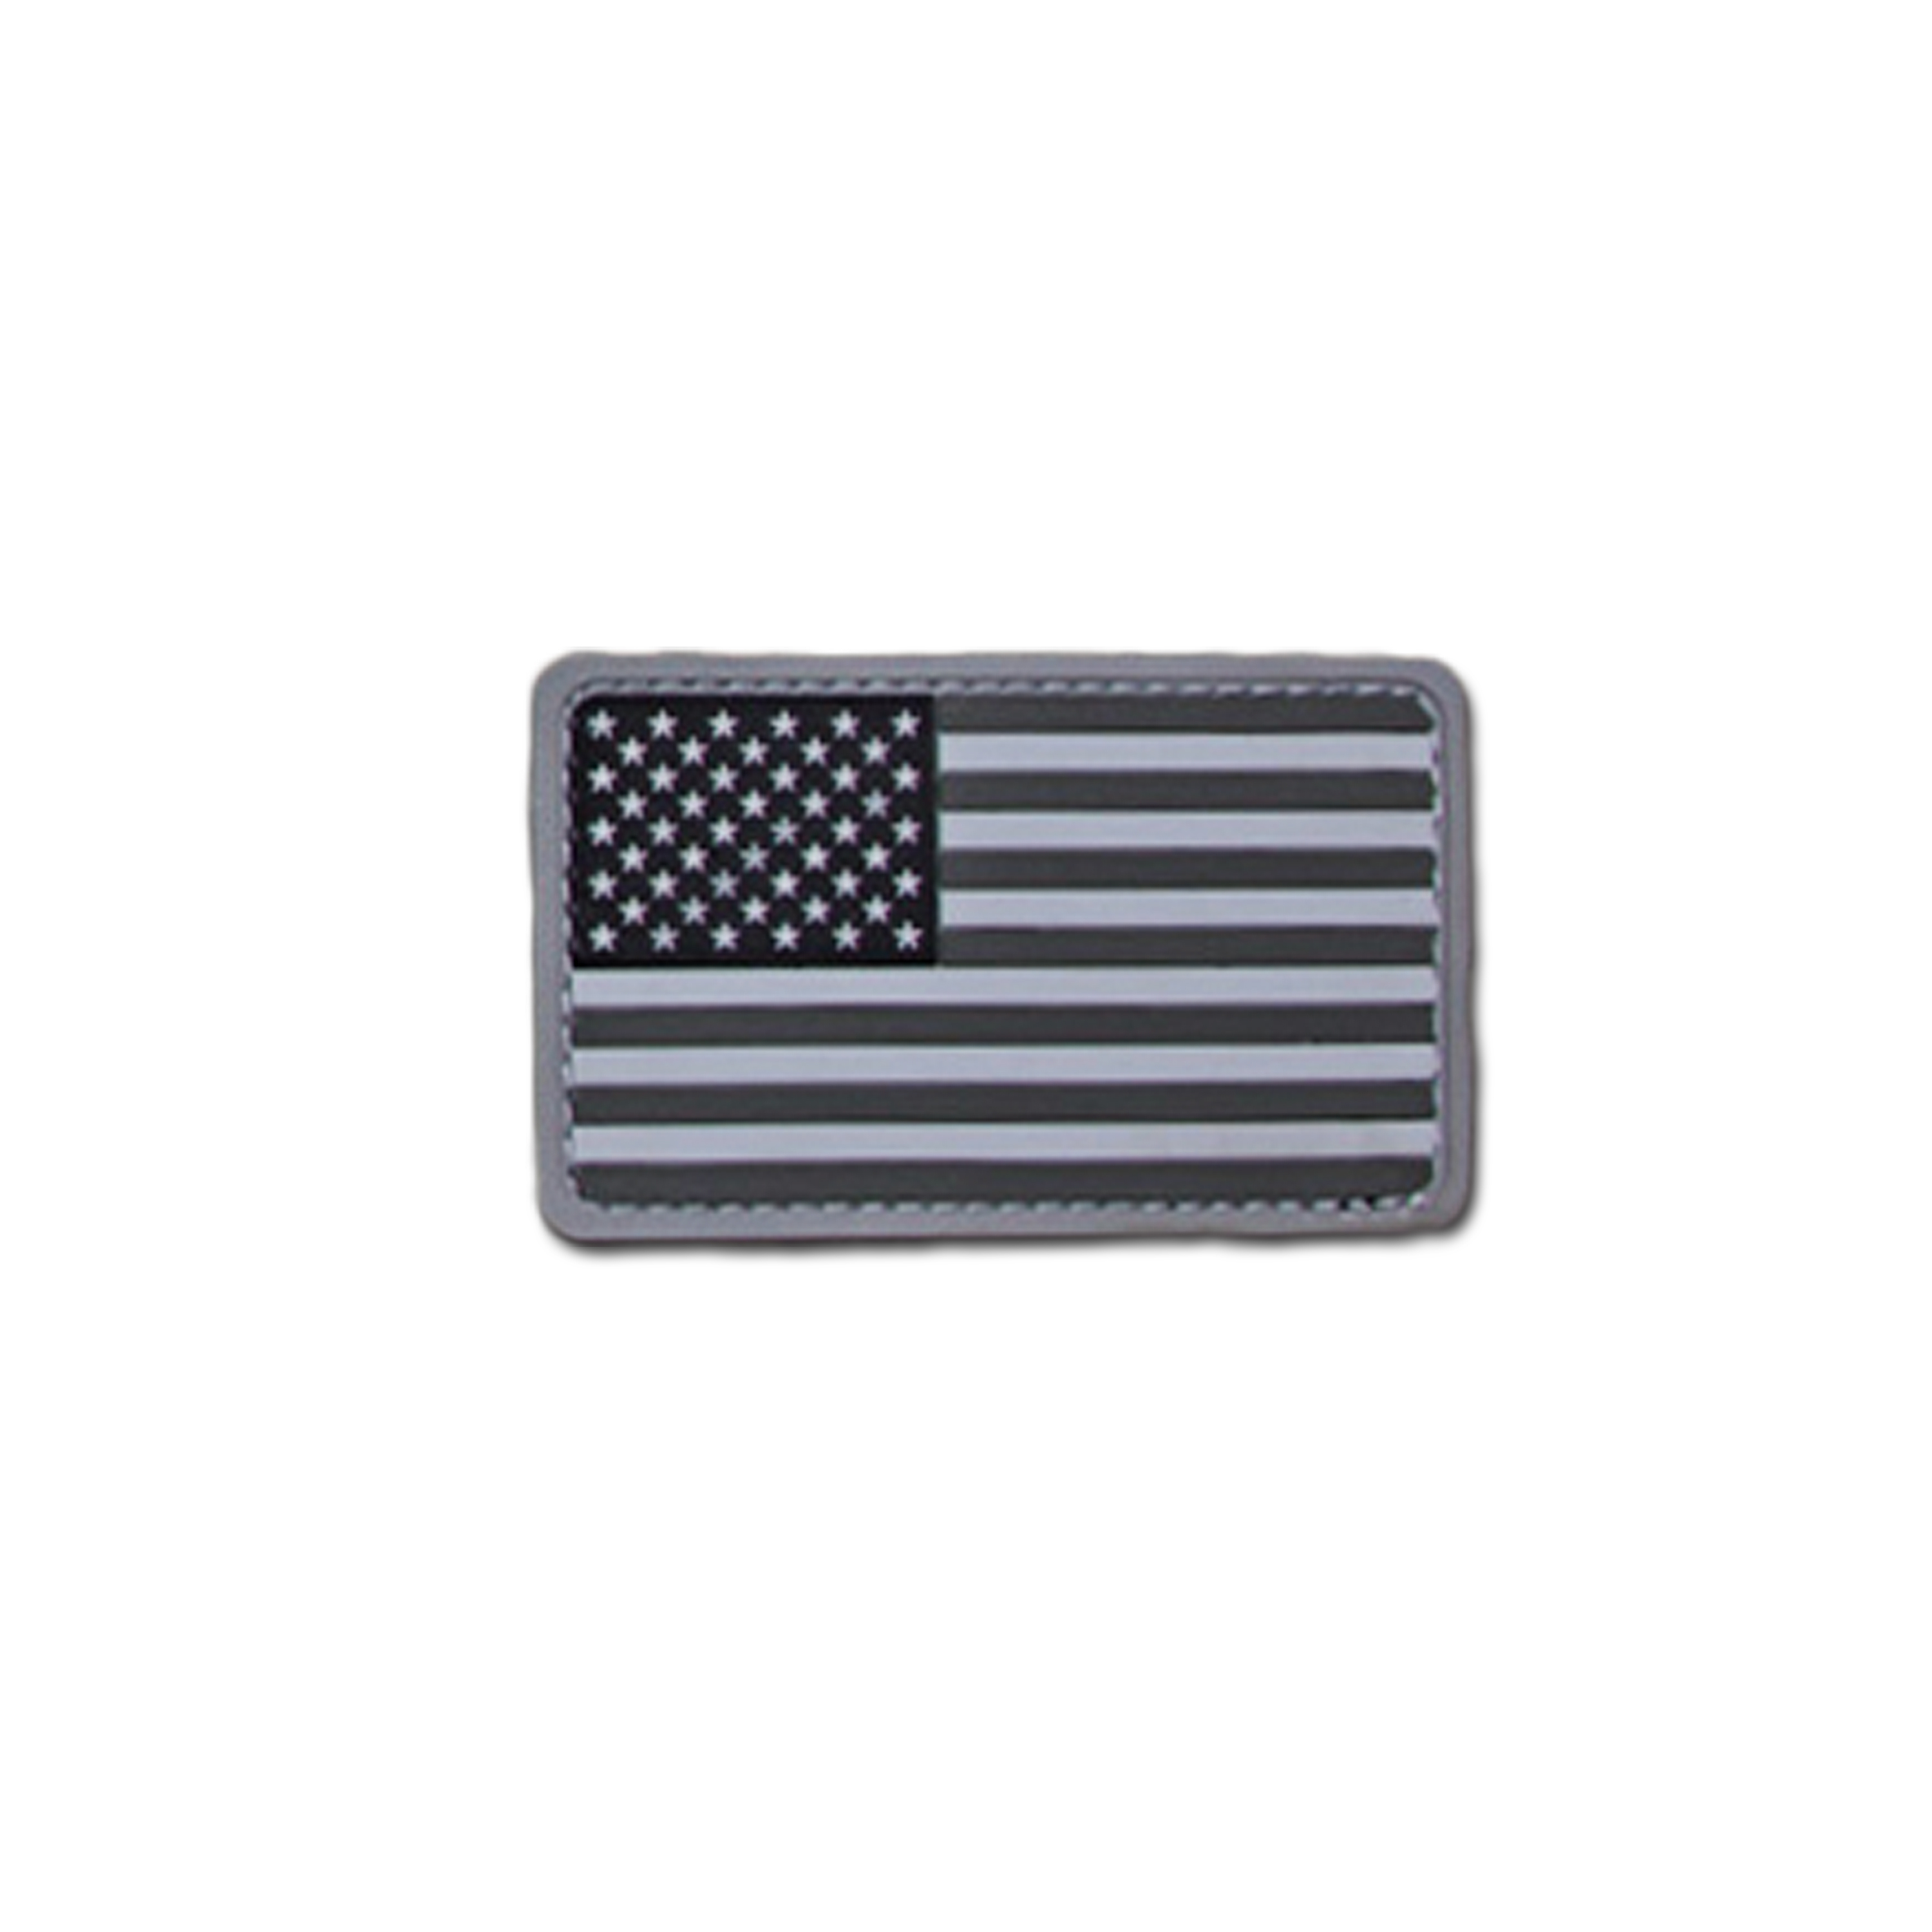 MilSpecMonkey Patch US Flag PVC swat